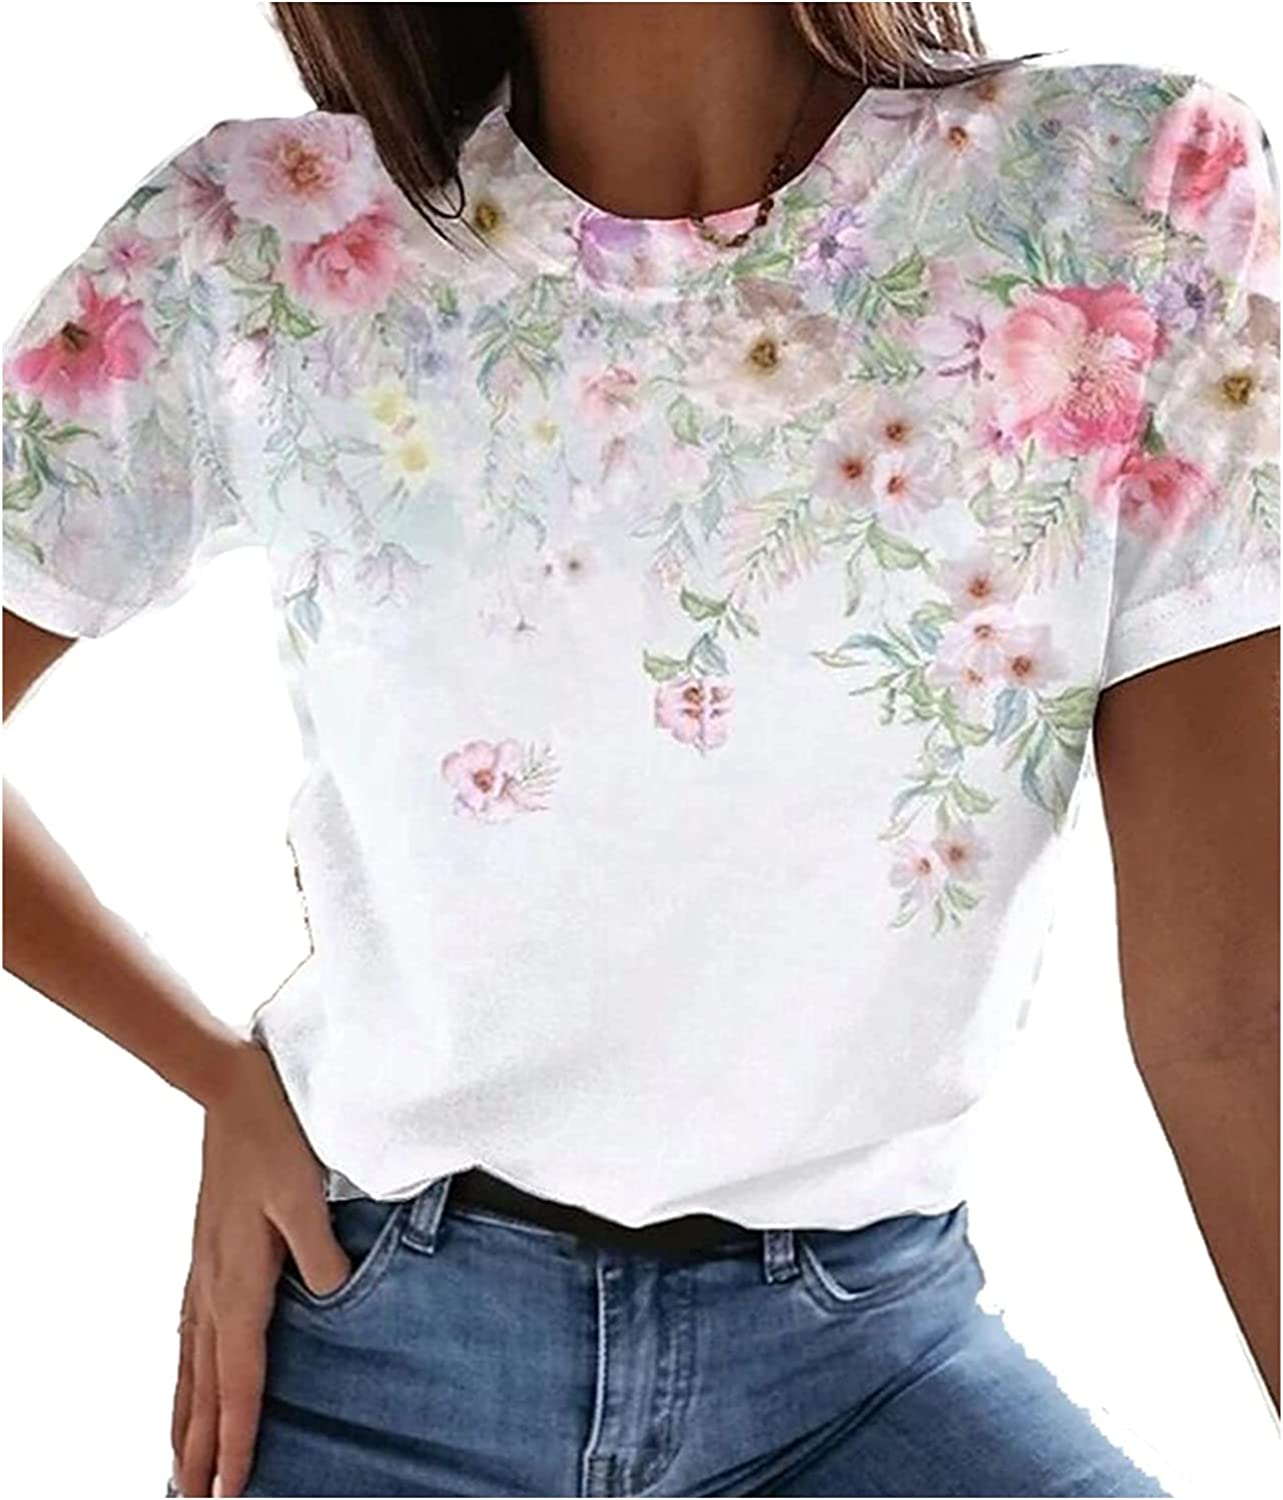 Meichang Womens Floral Theme Painting T Shirt Short Sleeve Tunic Casual Comfy Tee Round Neck Basic Tops